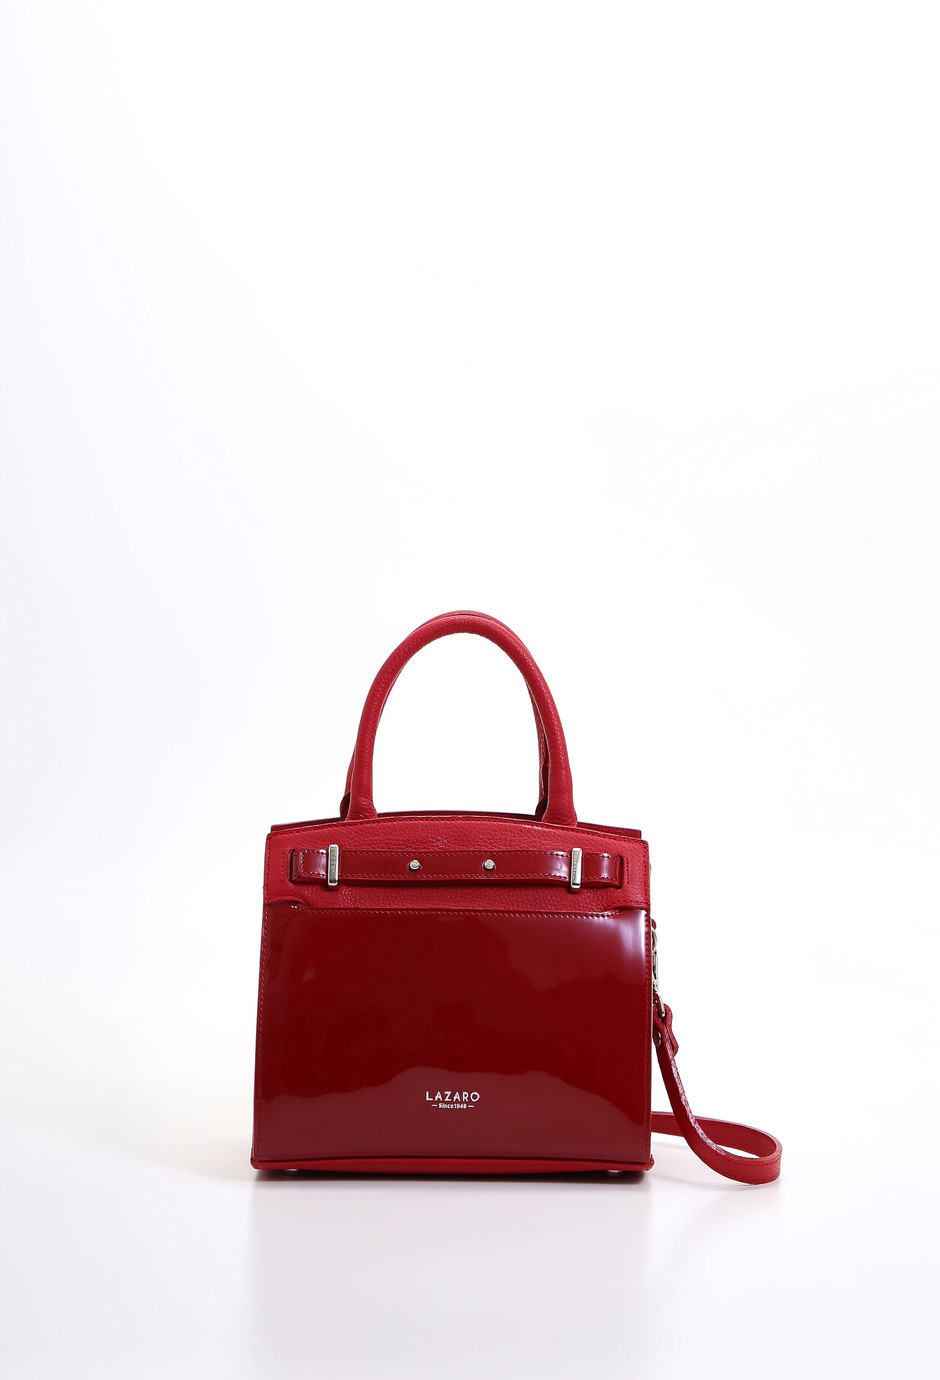 Lazaro Mini Bag Sicilia rojo